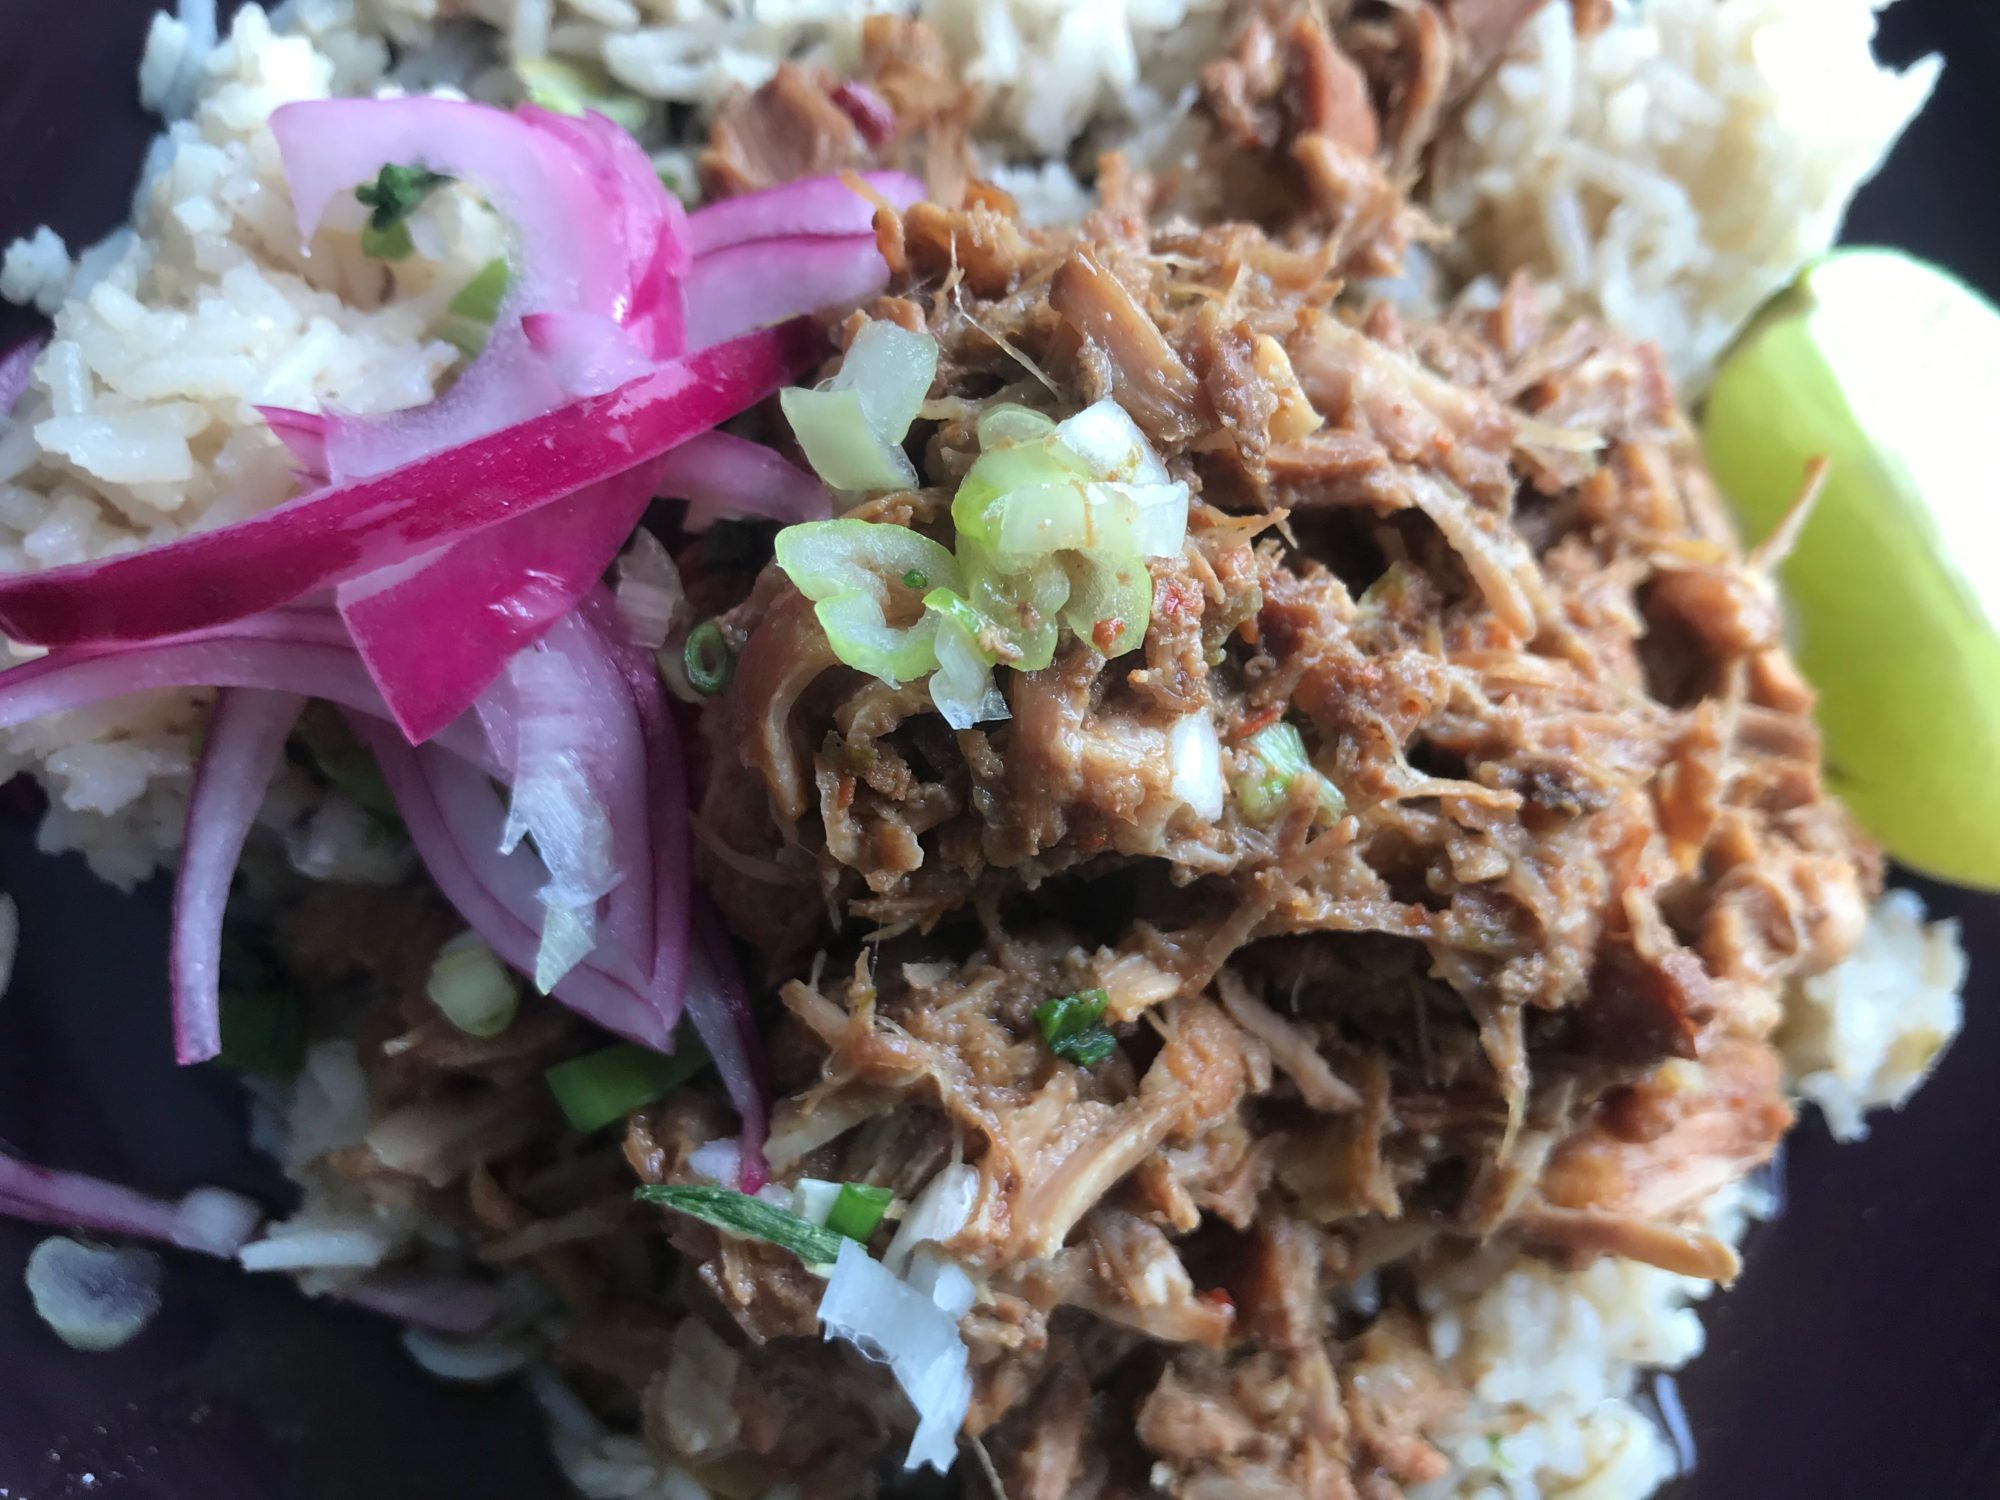 pork and rice plated, close close up